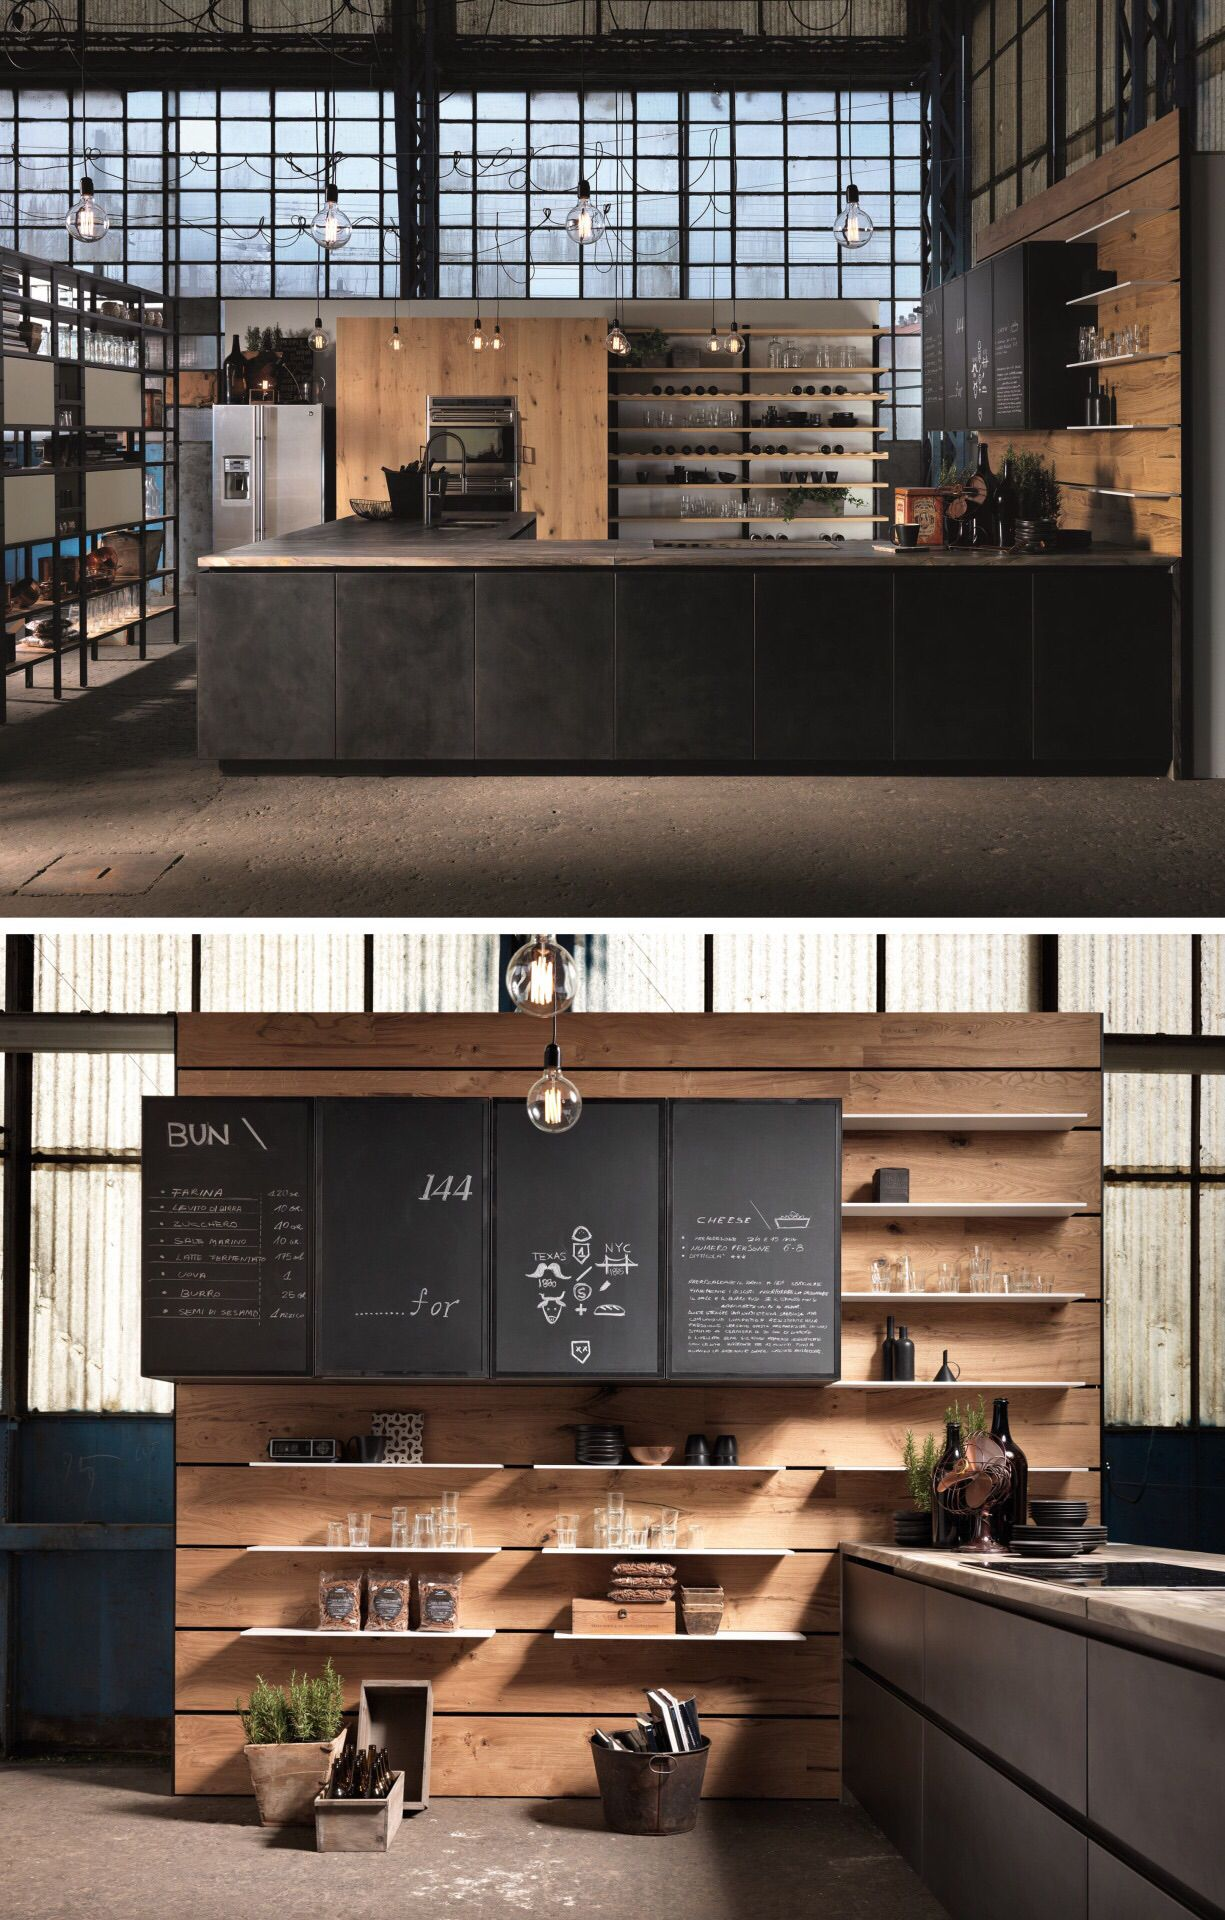 Dark Menucounter  Eatery  Pinterest  Menu Dark And Cafes Awesome Coffee Shop Kitchen Design 2018